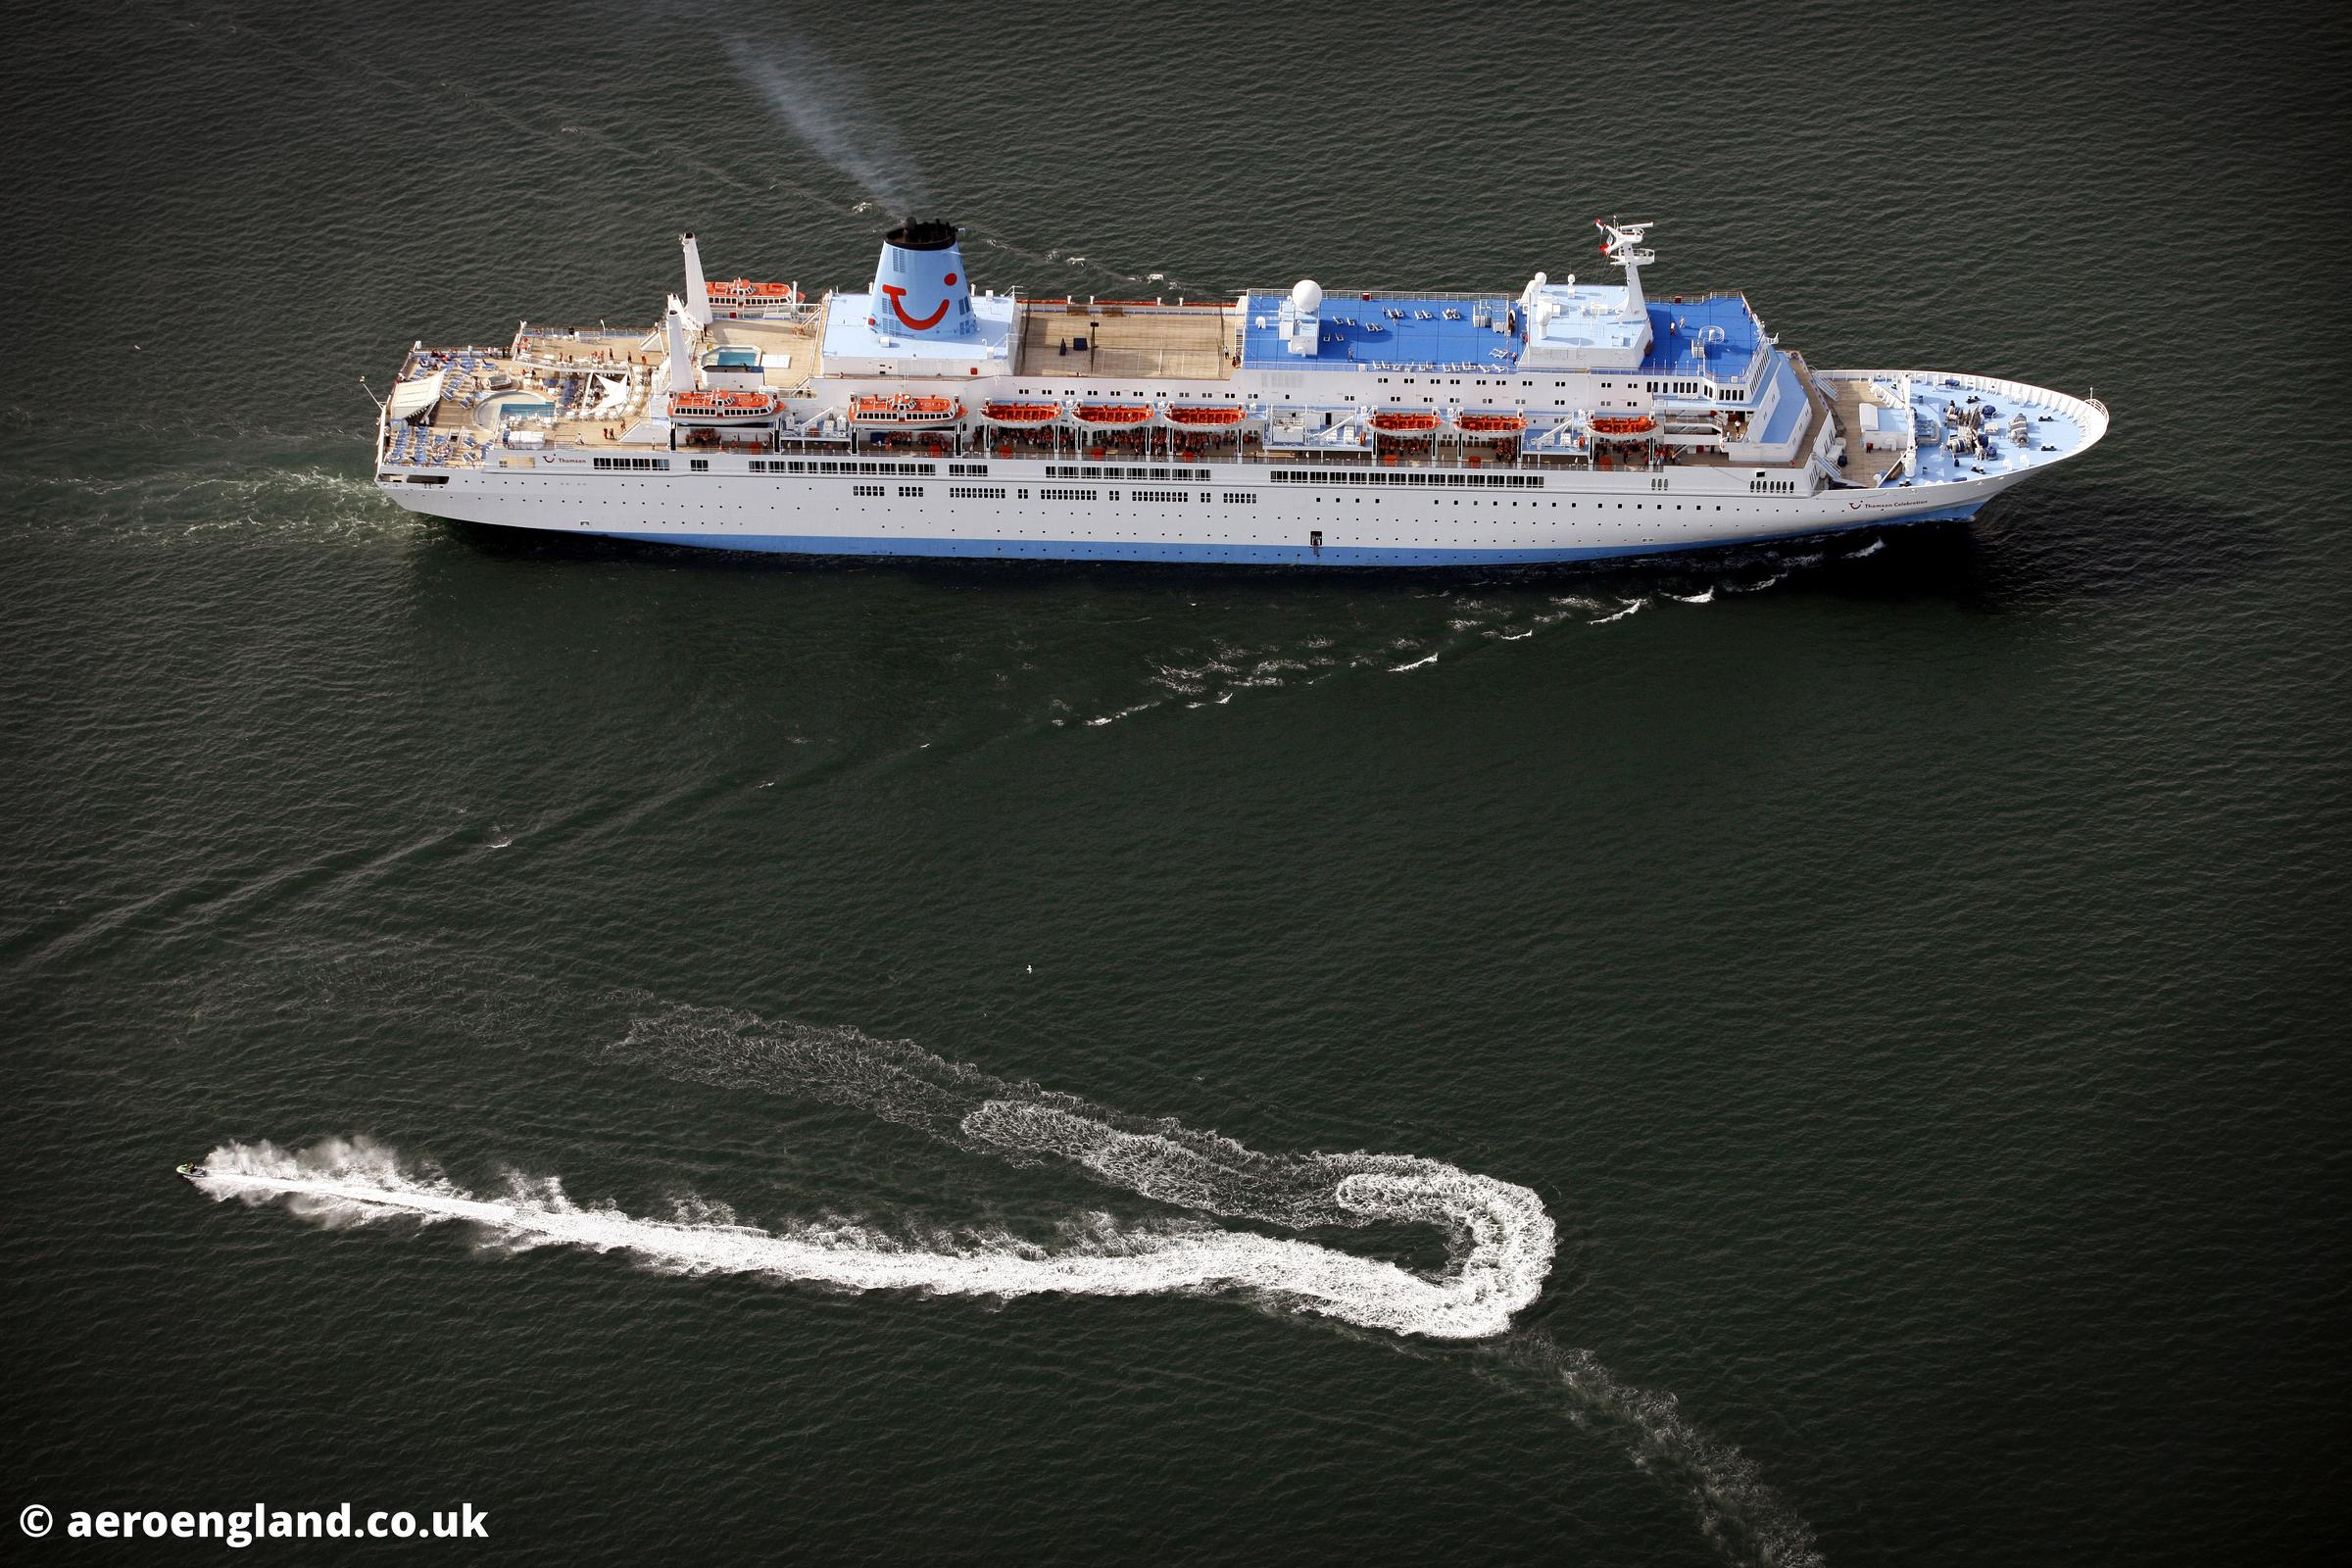 aerial photograph of  the Thompson Celebration Cruise ship leaving the River Tyne in  Tyne & Wear North East England  UK